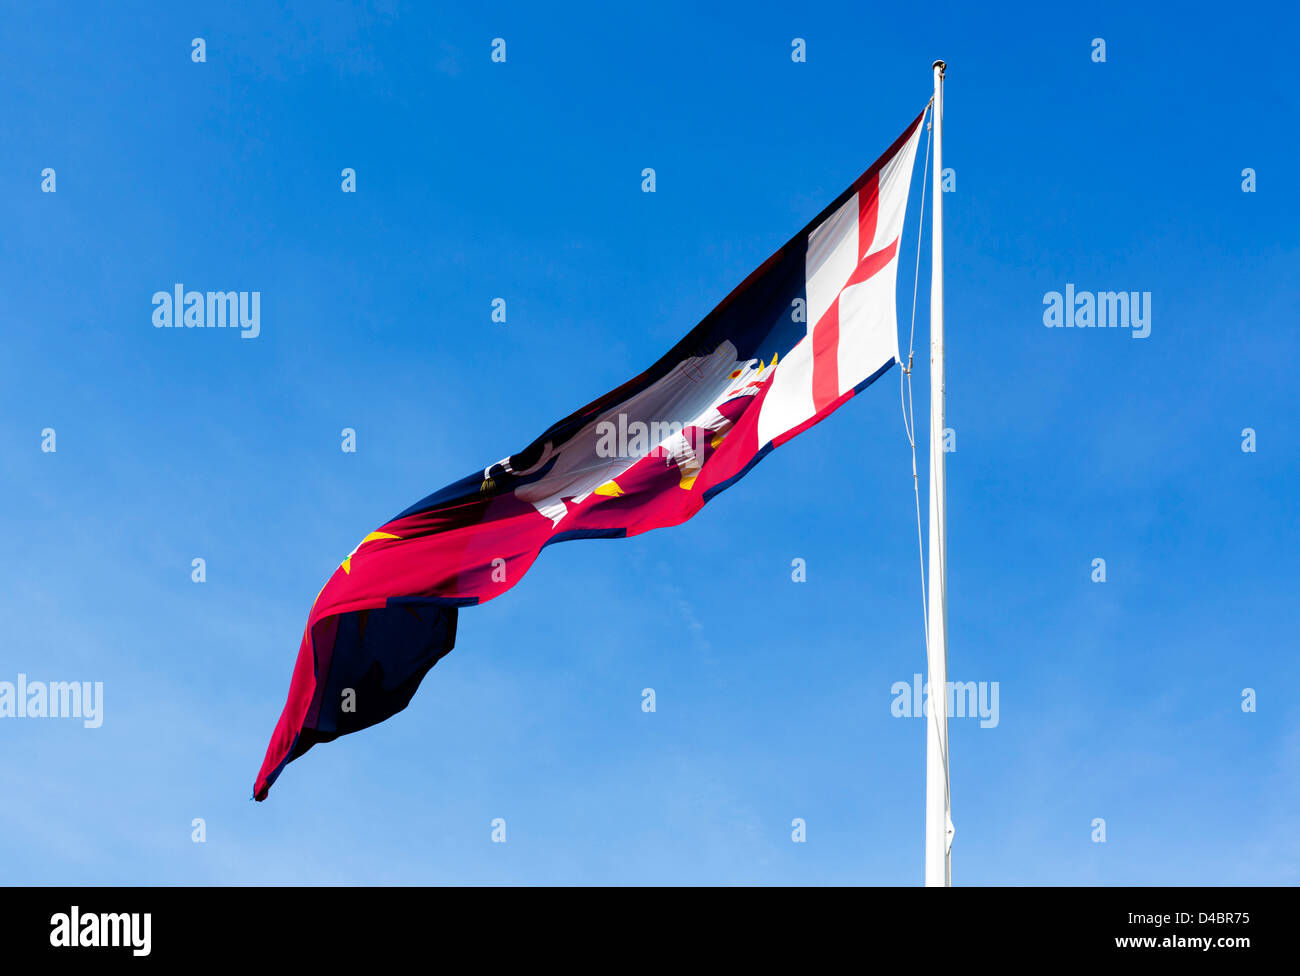 Personal banner of Richard III flying on Ambion Hill, Bosworth Battlefield, Leicestershire, East Midlands, UK - Stock Image